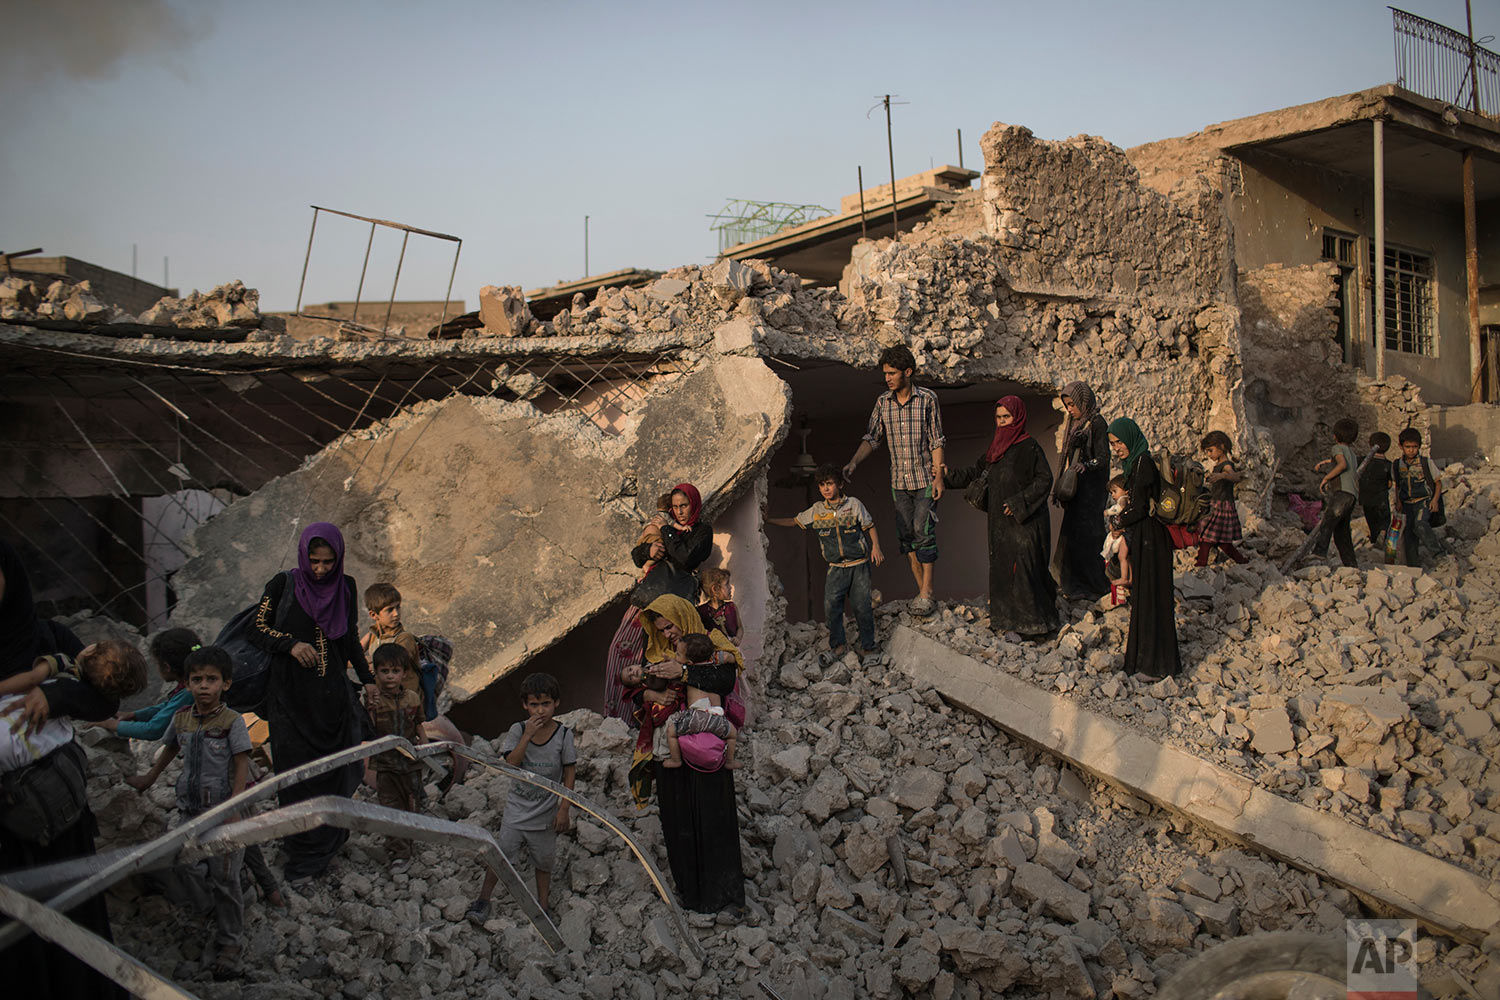 In this July 4, 2017 photo, Iraqi civilians flee fighting between Iraqi forces and Islamic State militants through the rubble of destroyed houses in the Old City of Mosul, Iraq. (AP Photo/Felipe Dana)